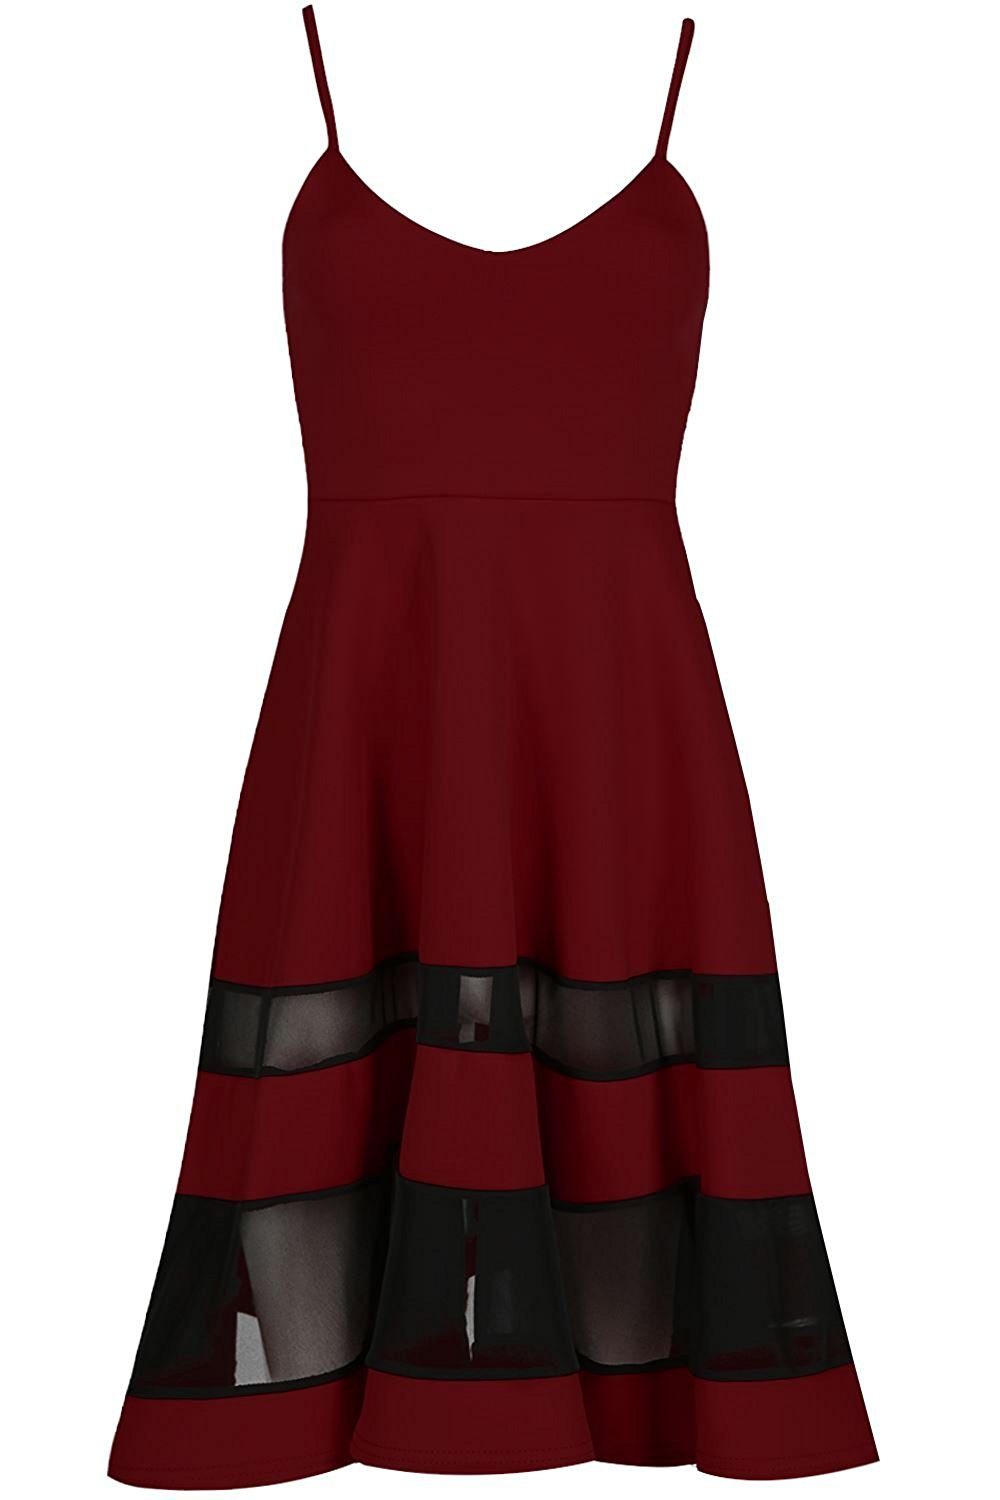 d2e70ddc6a Get Quotations · Oops Outlet Sleeveless Contrast Mesh Panel Swing Skater  Dress Flared Midi Dress